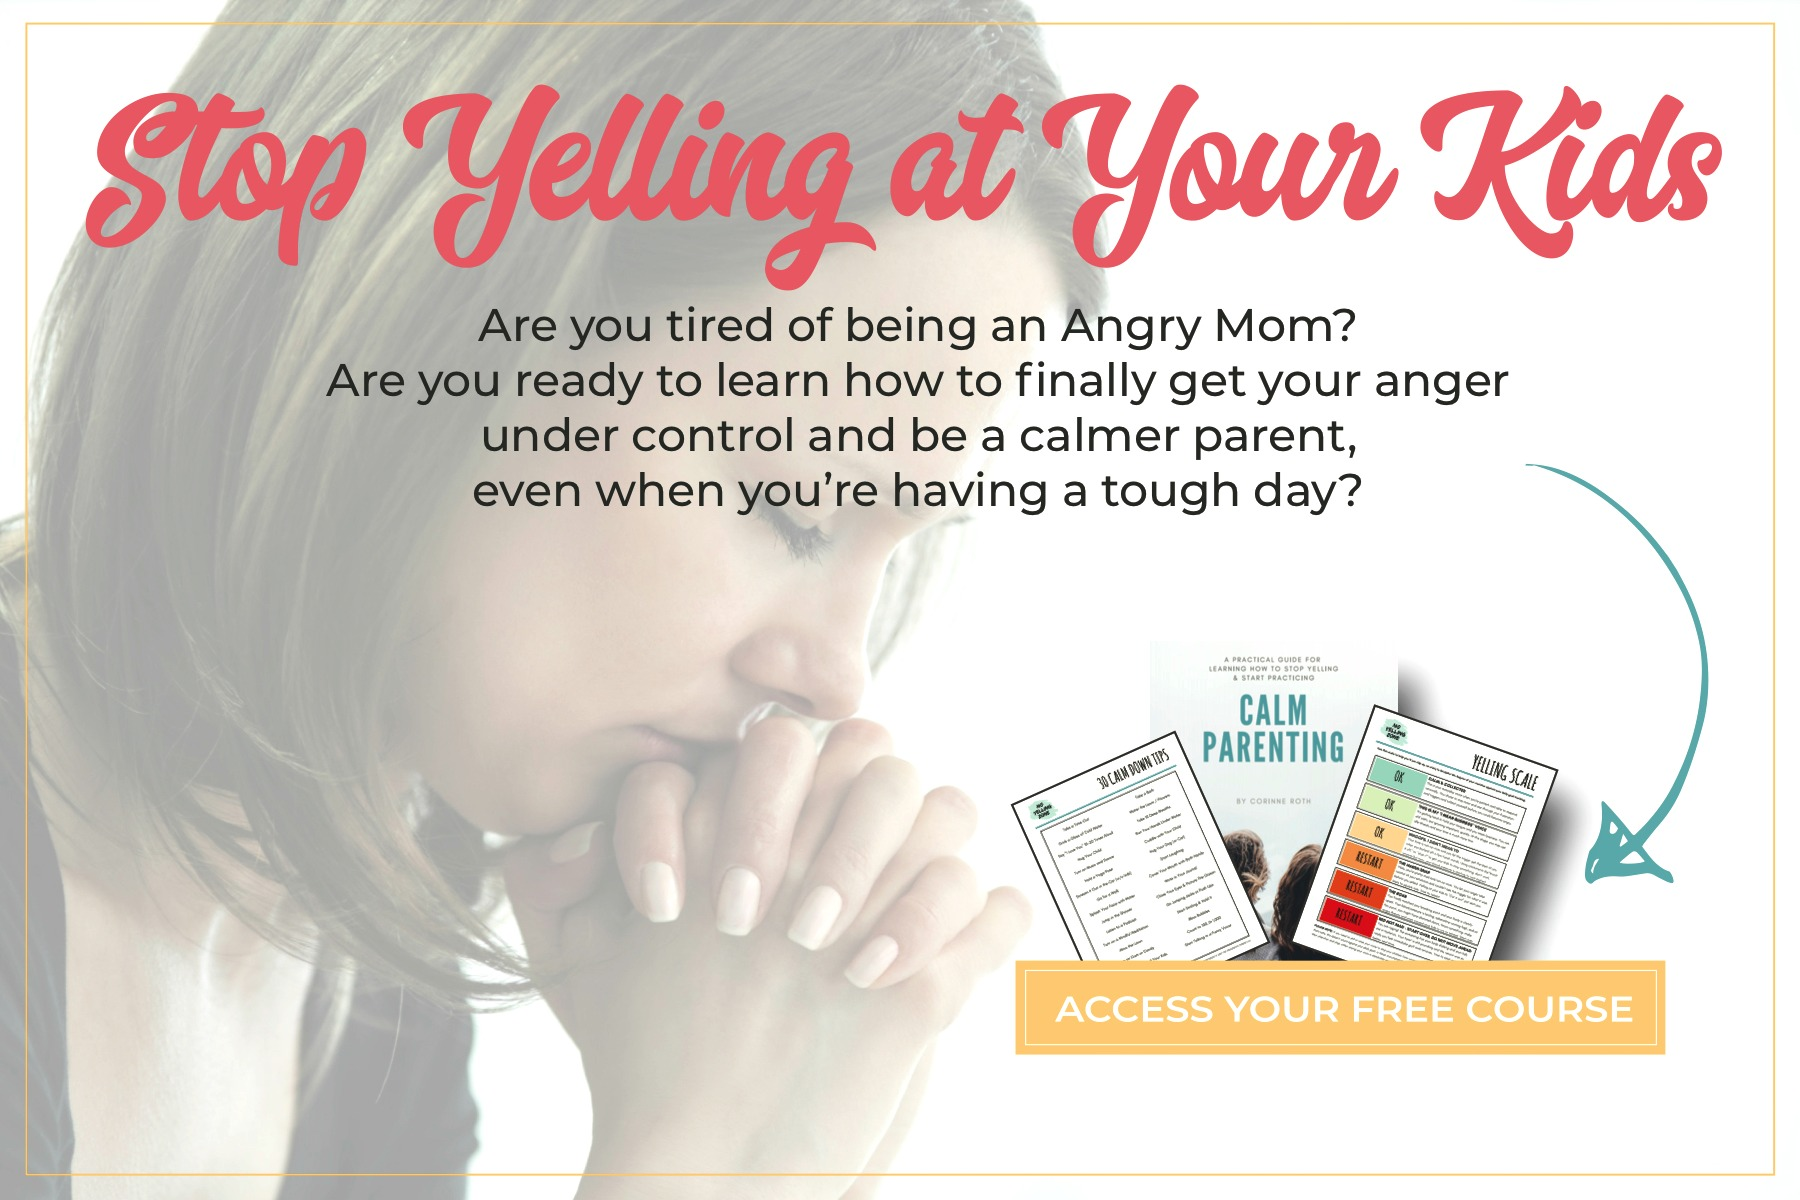 b8c3df6a67 Need a little extra help learning how to get your anger under control?  Here's a FREE Course that will help you turn things around.